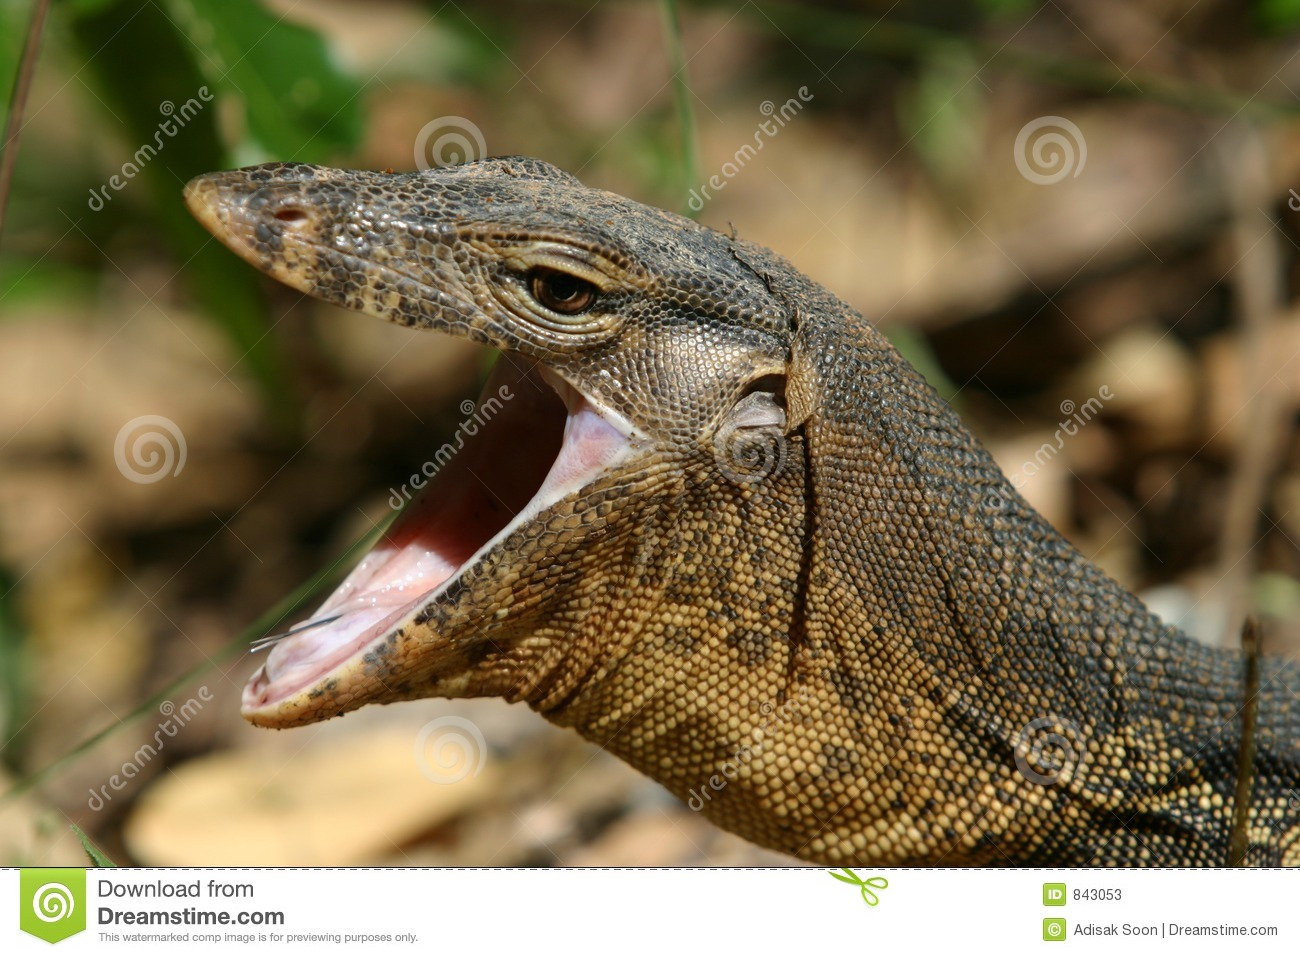 Monitor Lizard Stock Photos - Image: 843053